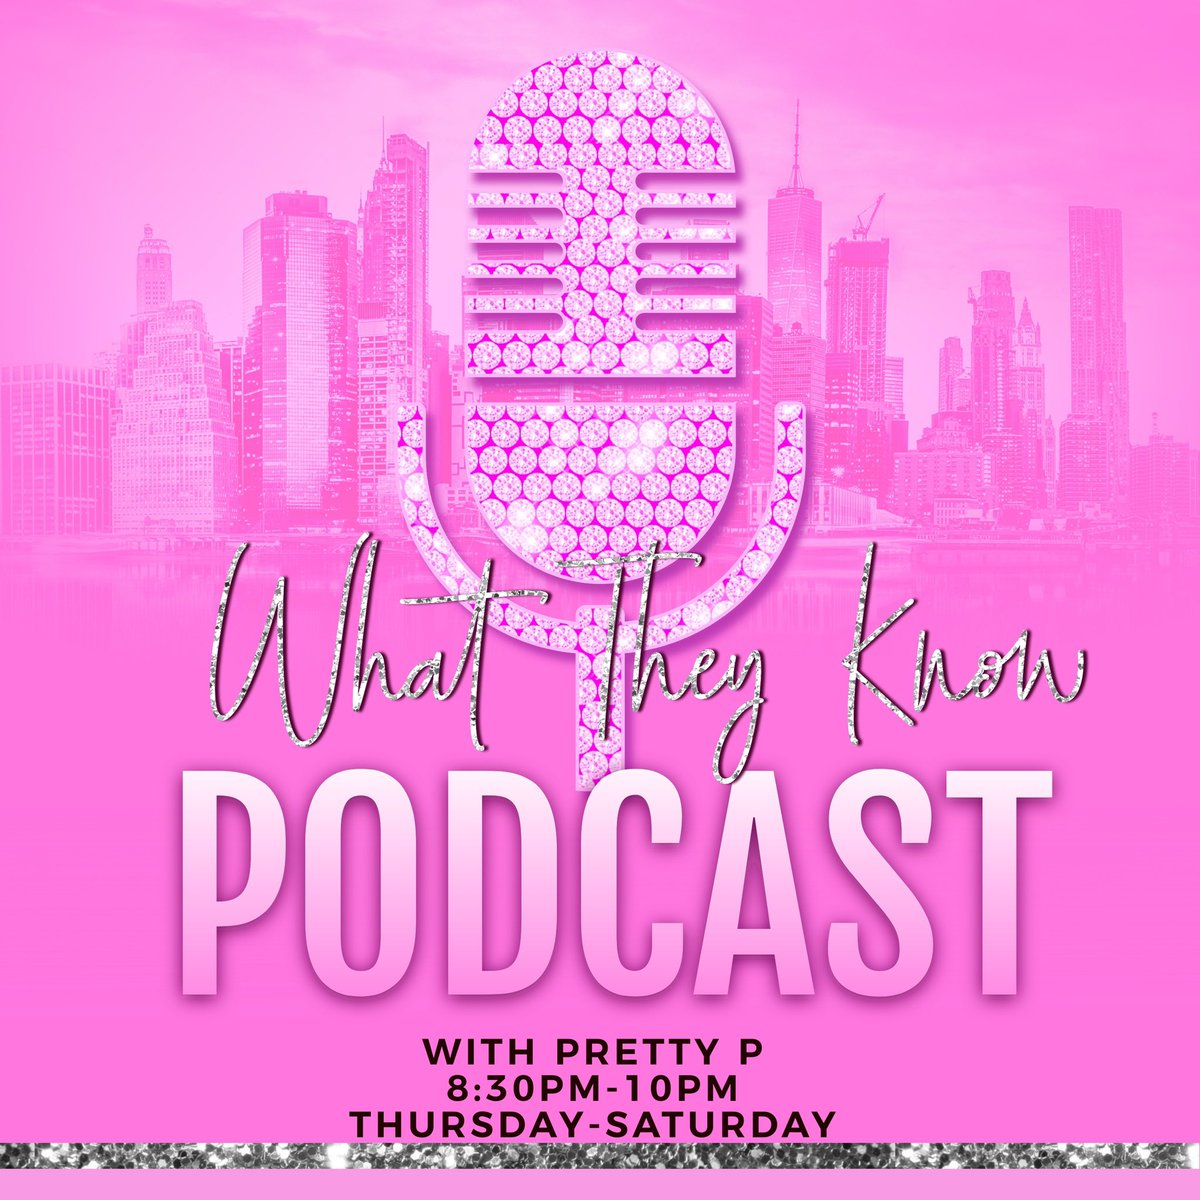 #poscast @whattheyknow2  #topic jealousy people how do you control your anger 😤🎥🎥 @whattheyknow2  #podcast #thursdayvibes #ThursdayMotivation #Topic #talkshow